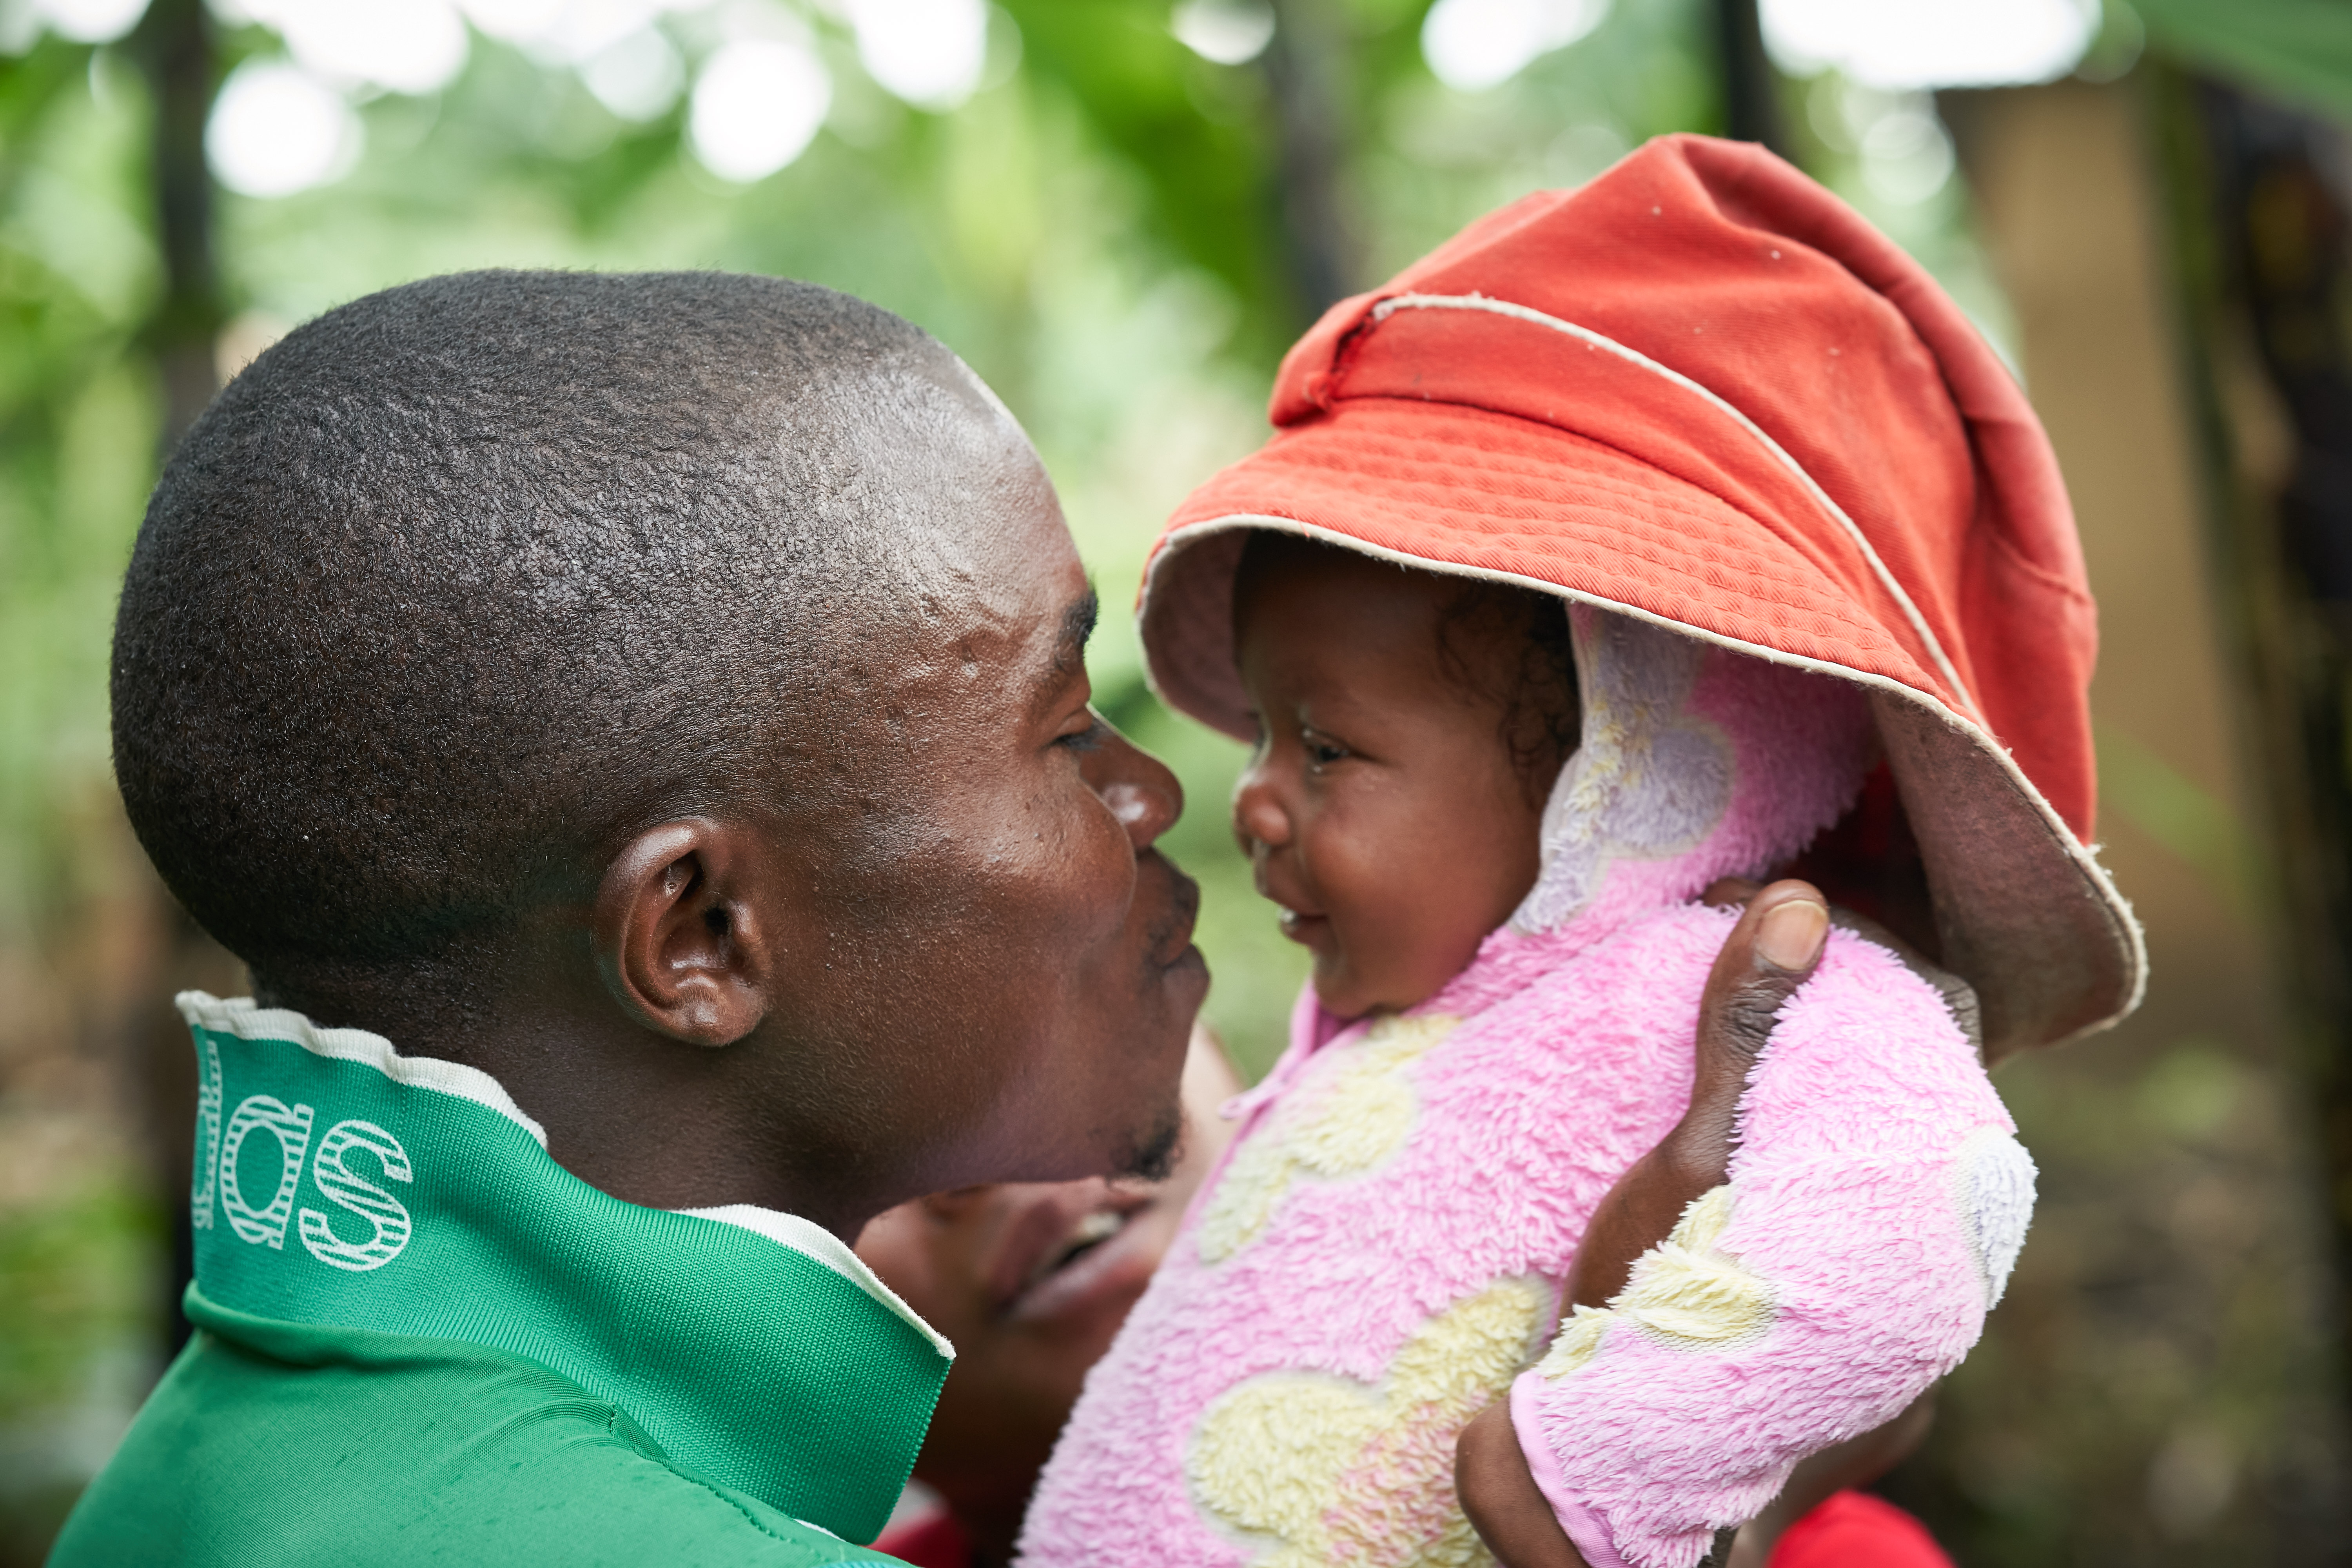 Gallas, Janet's husband and Uganda refugee, holding his daughter Vanessa